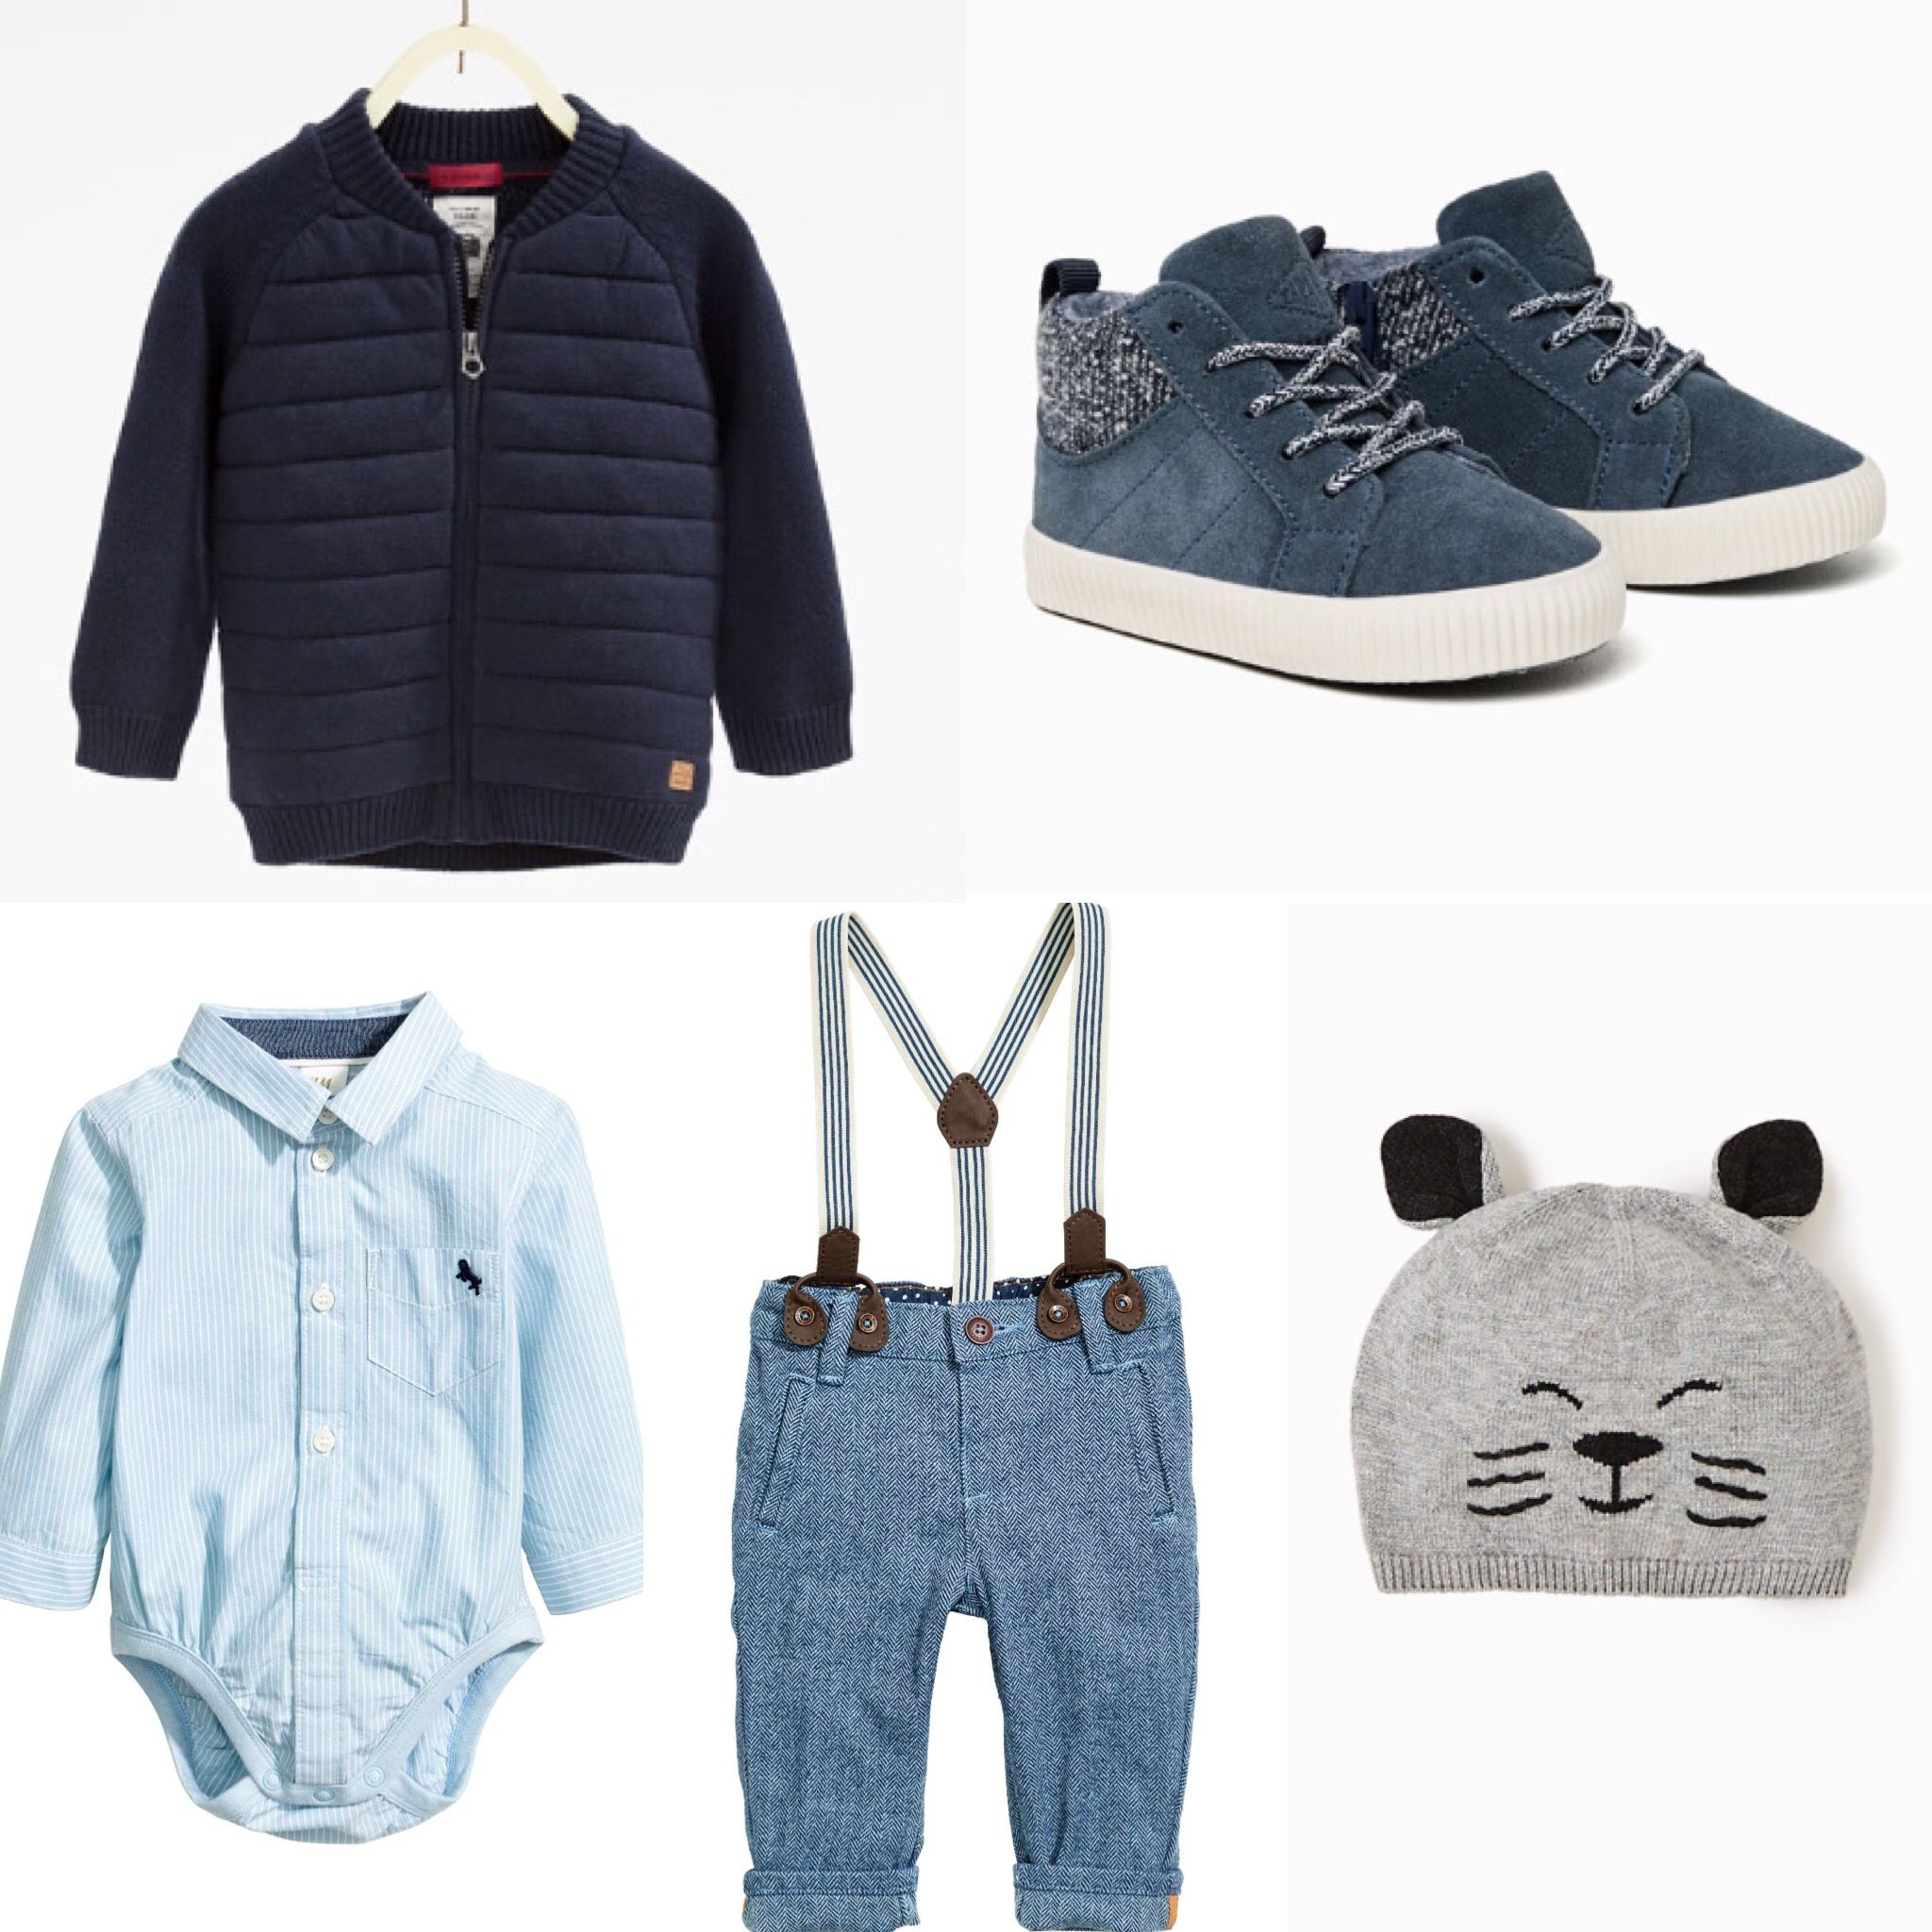 d6643c0de531 Baby boy outfit idea. H M trousers and body. Zara jacket